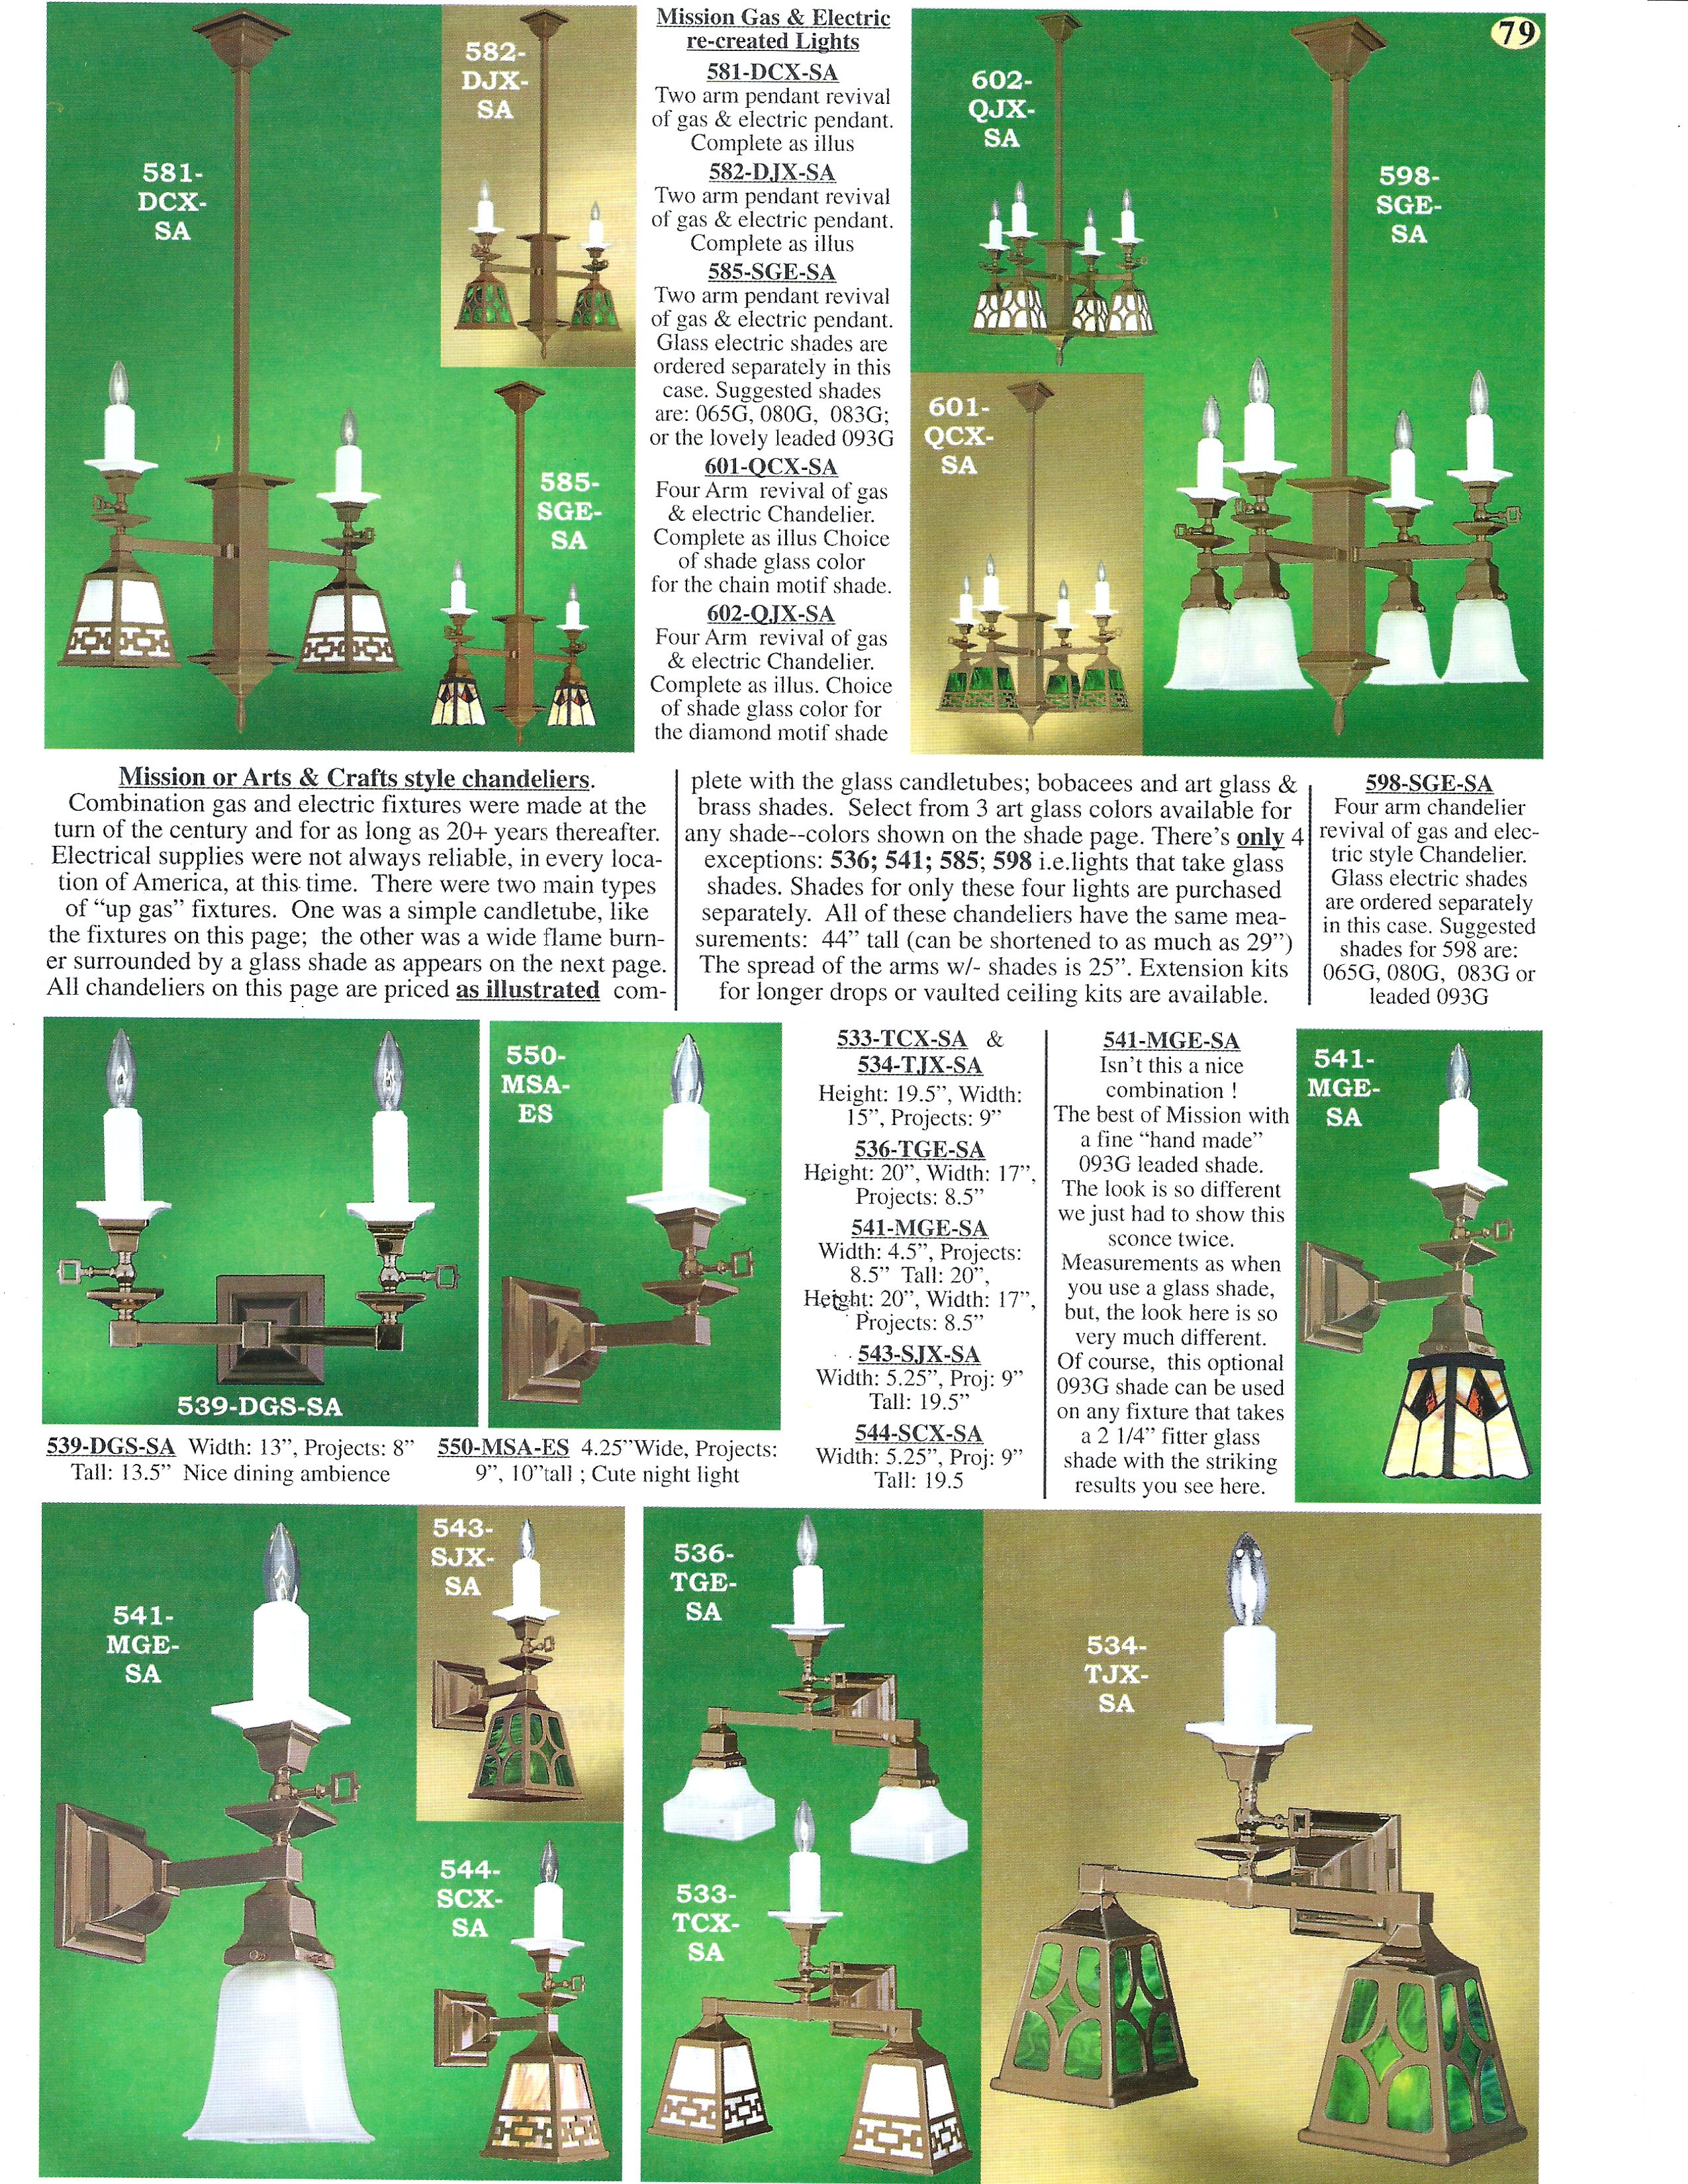 Catalog page 105